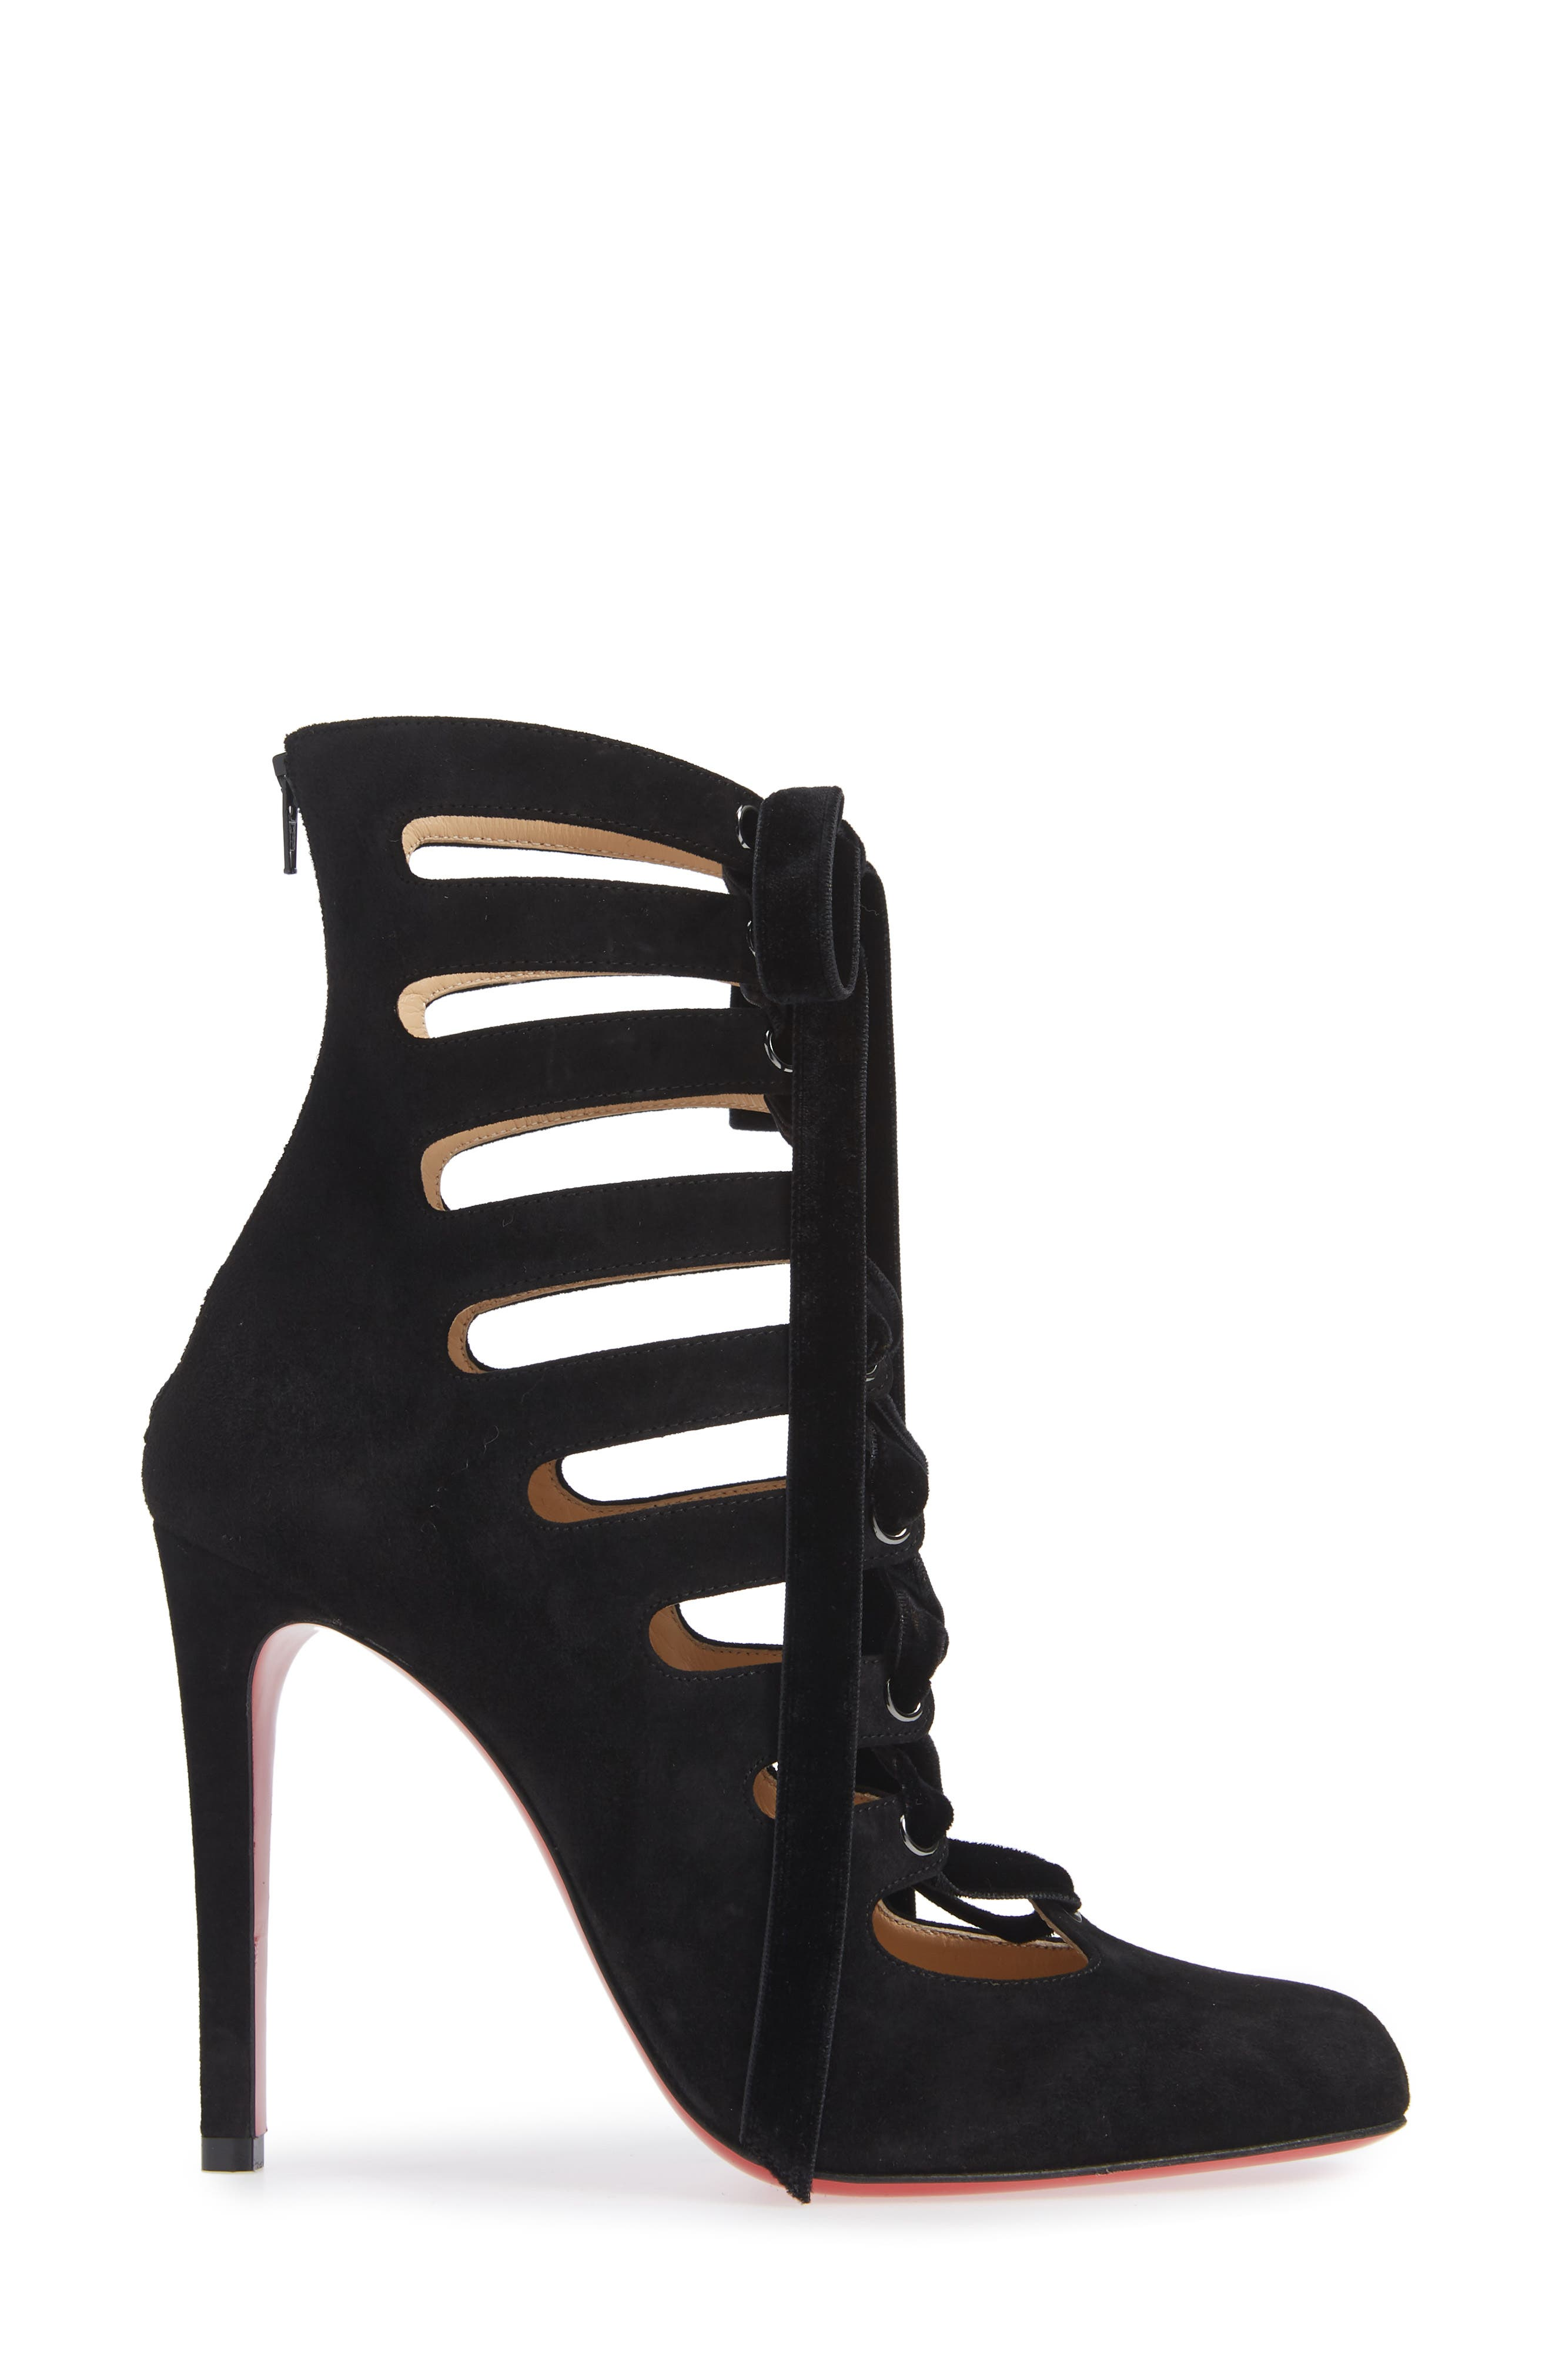 Spinetita Cage Lace-Up Bootie,                             Alternate thumbnail 3, color,                             001